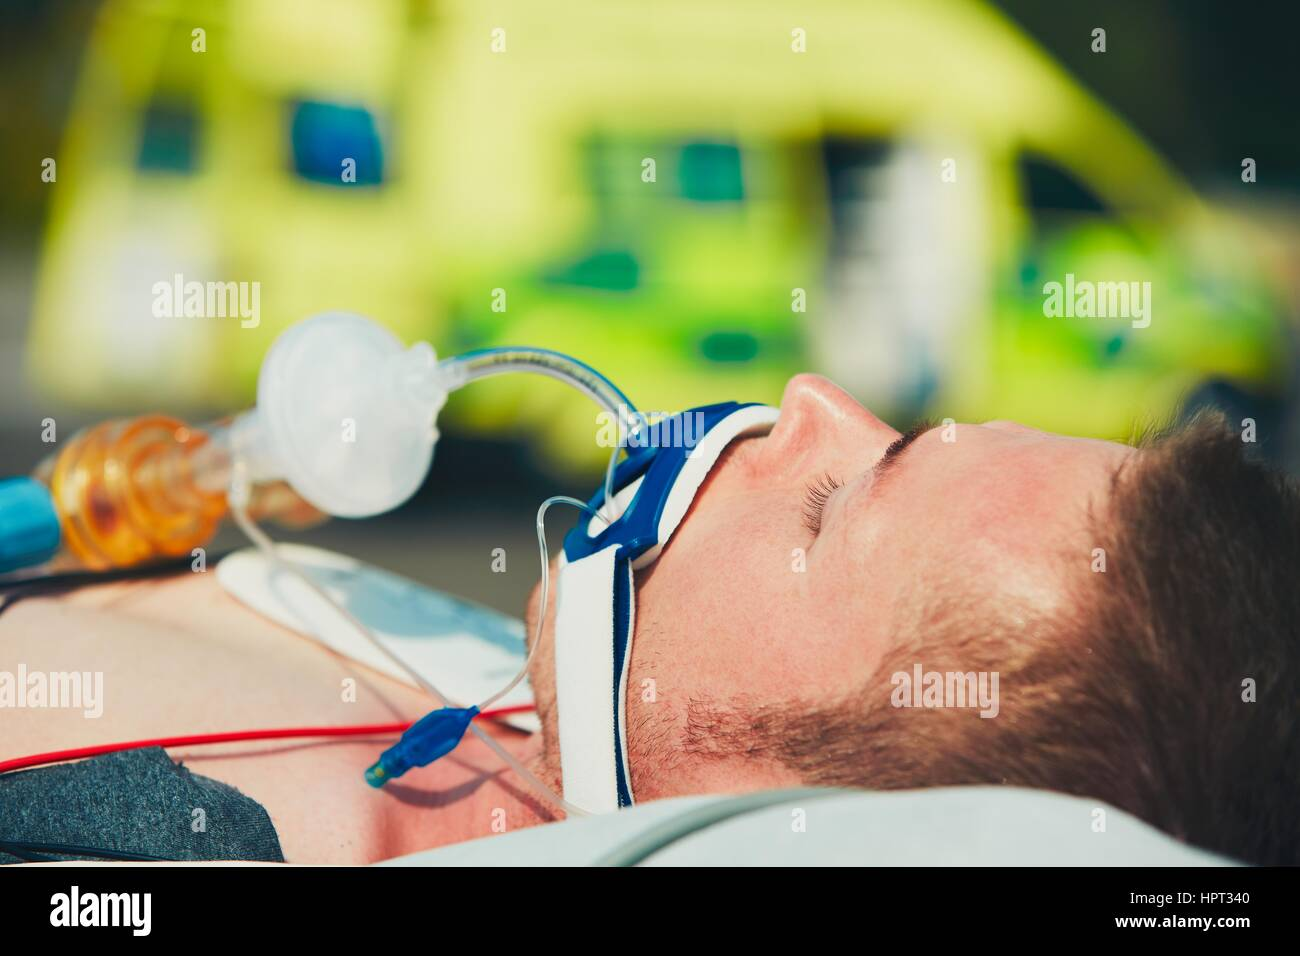 Paramedic preparing the patient after resuscitation for transport to the hospital. - Stock Image